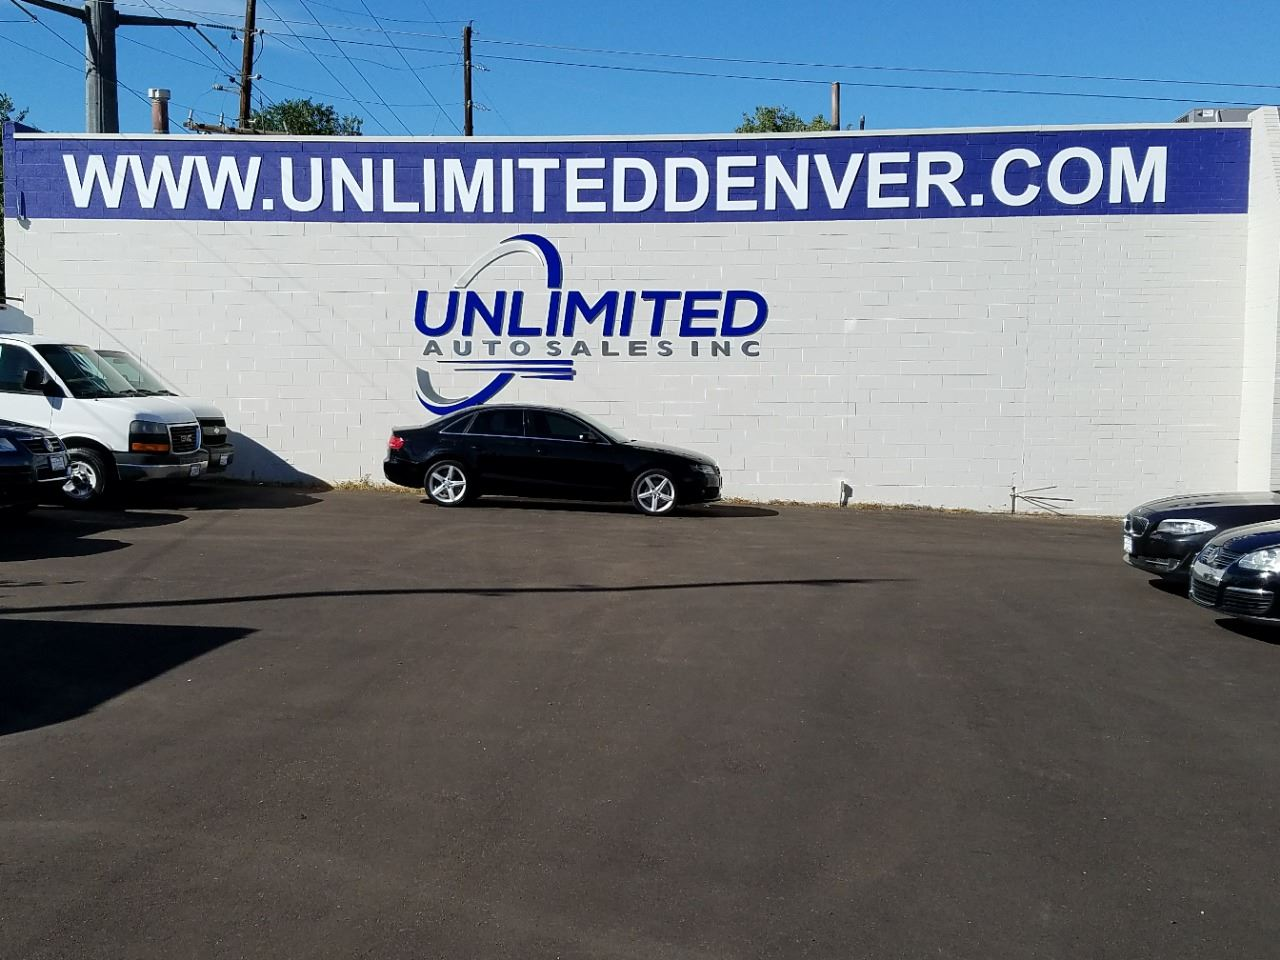 Unlimited Auto Sales